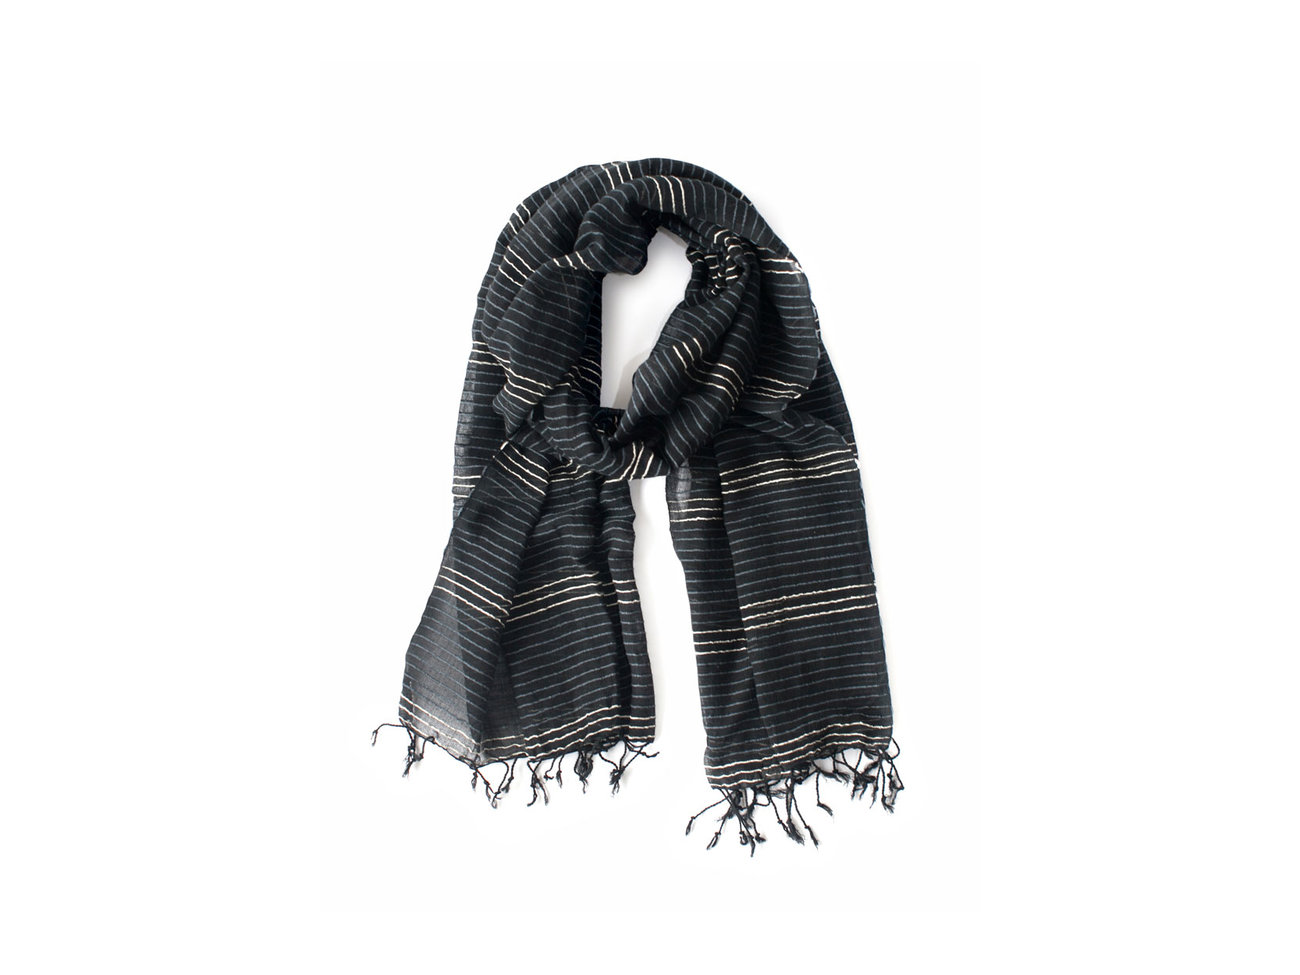 Give-Fashion-Scarf-GG1115.jpg